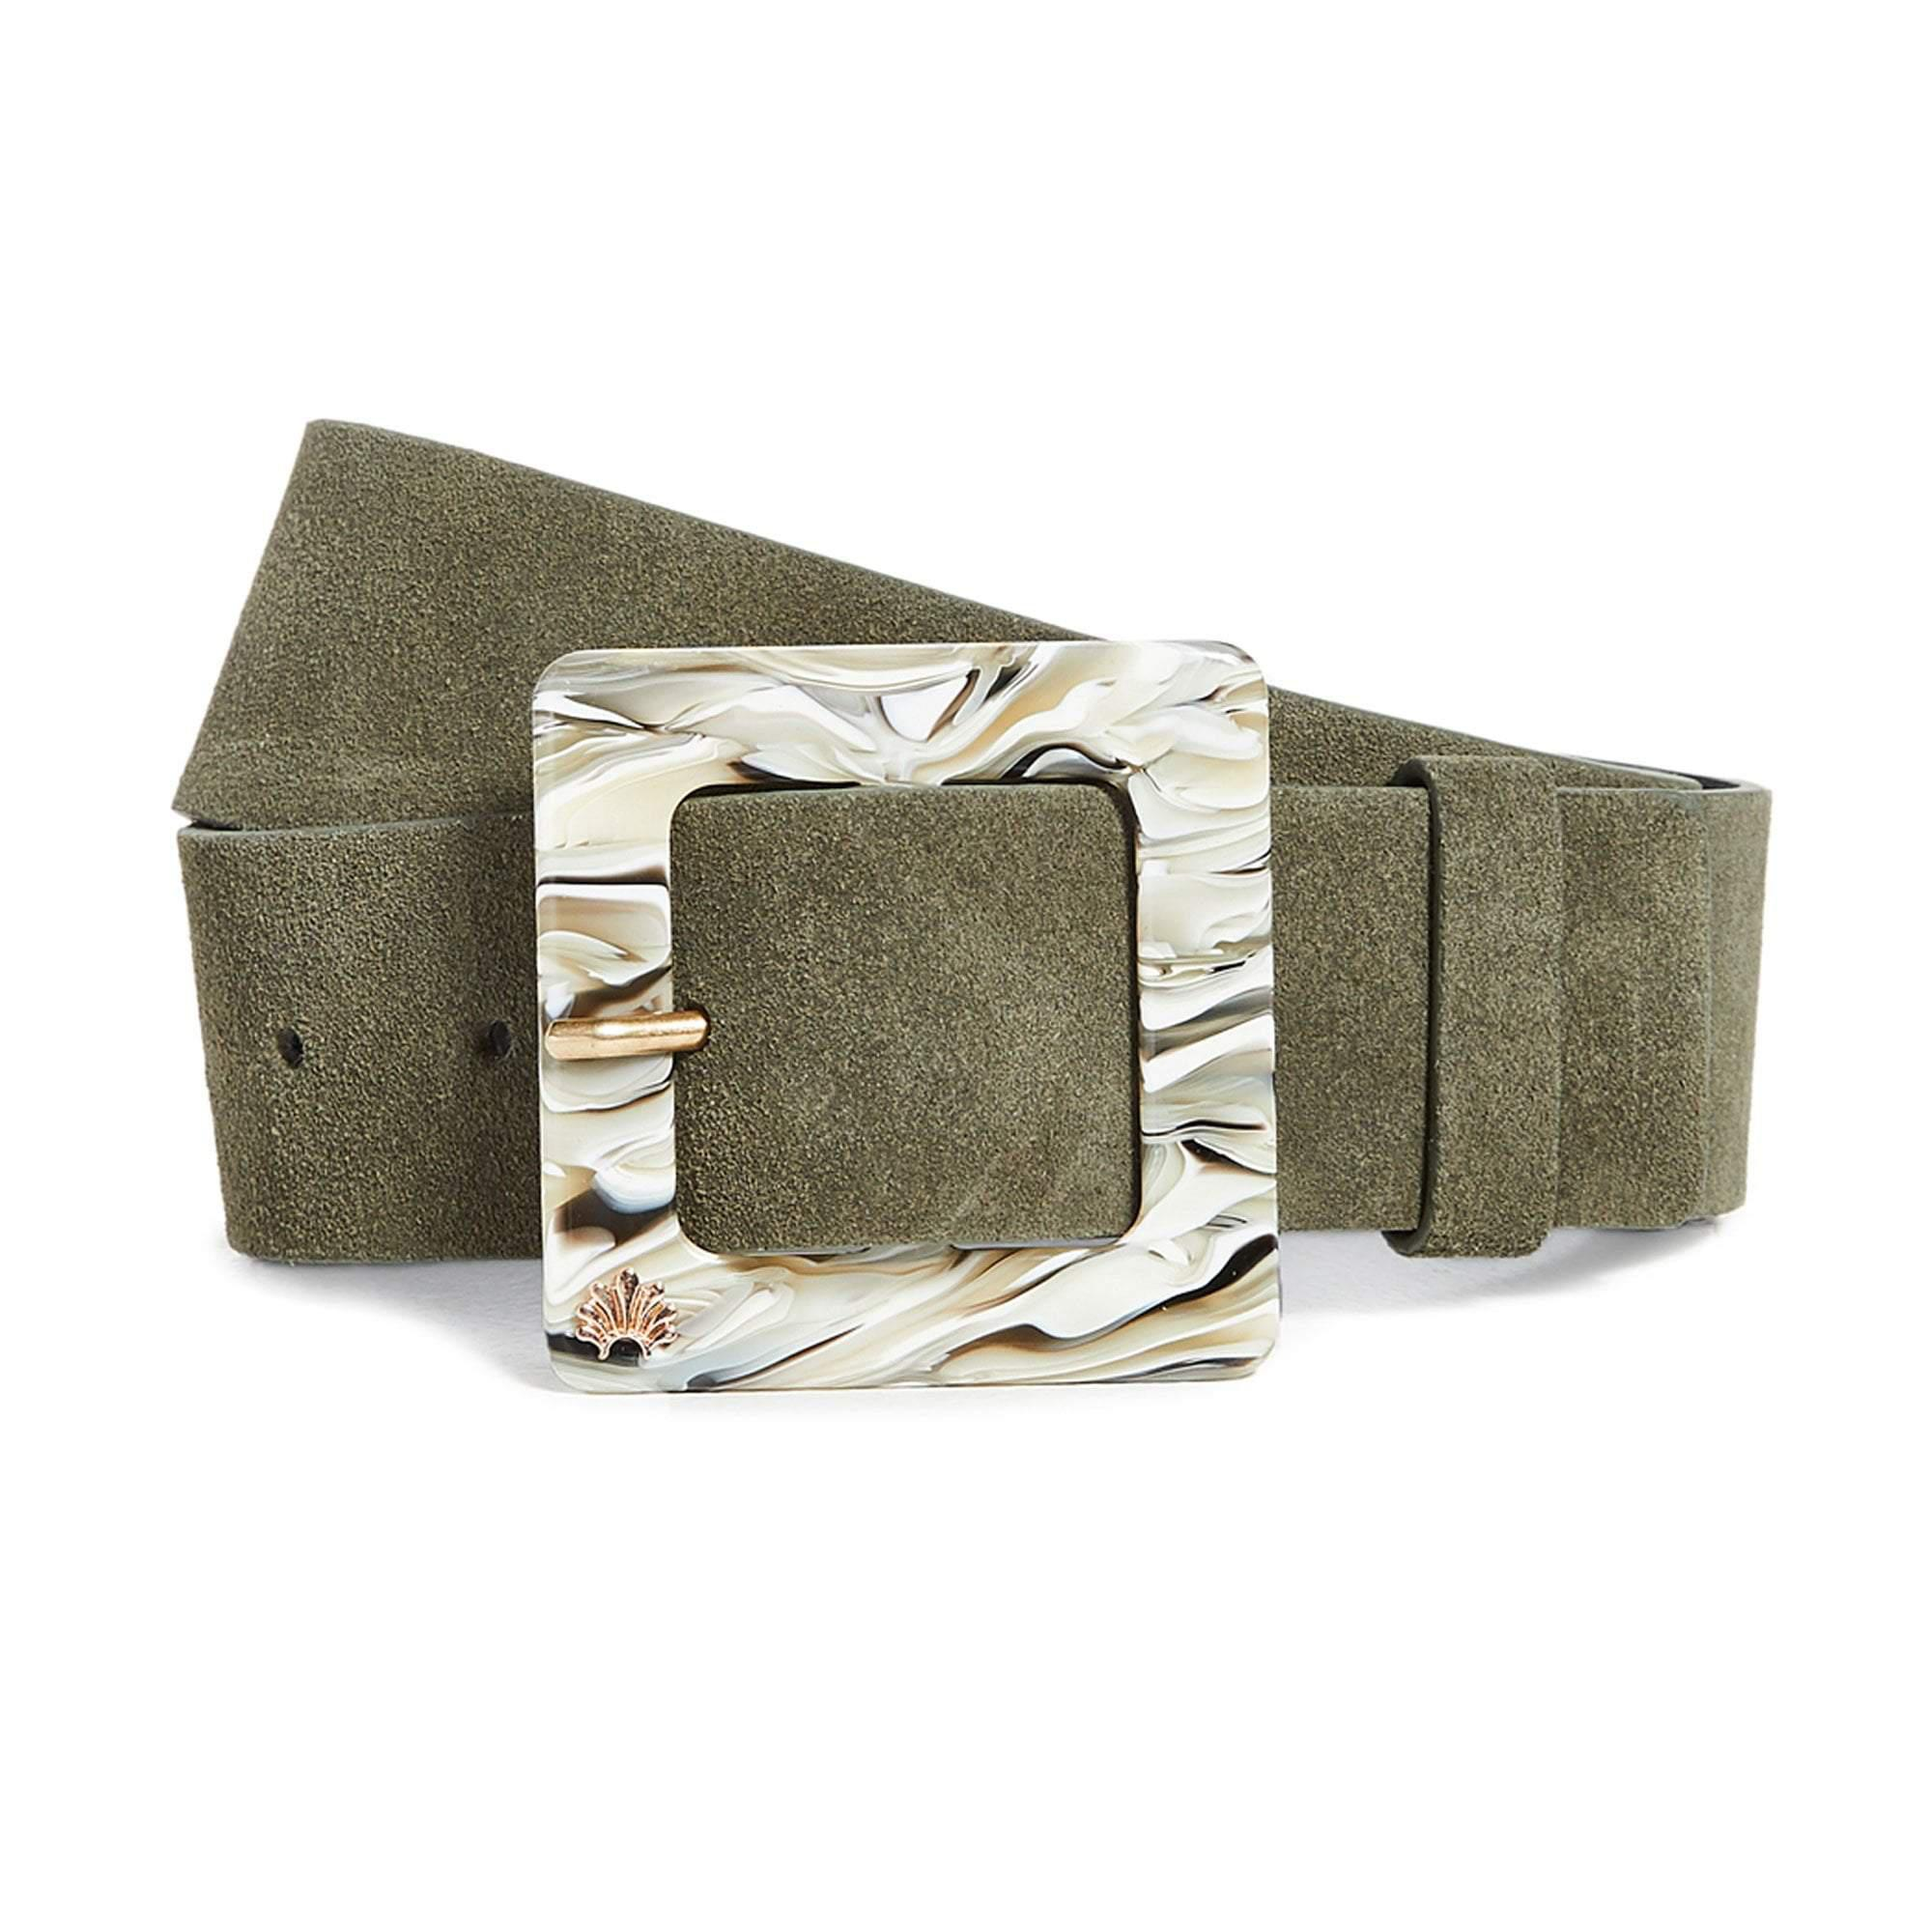 OLIVE SUEDE AND MARBLED ACETATE BELT